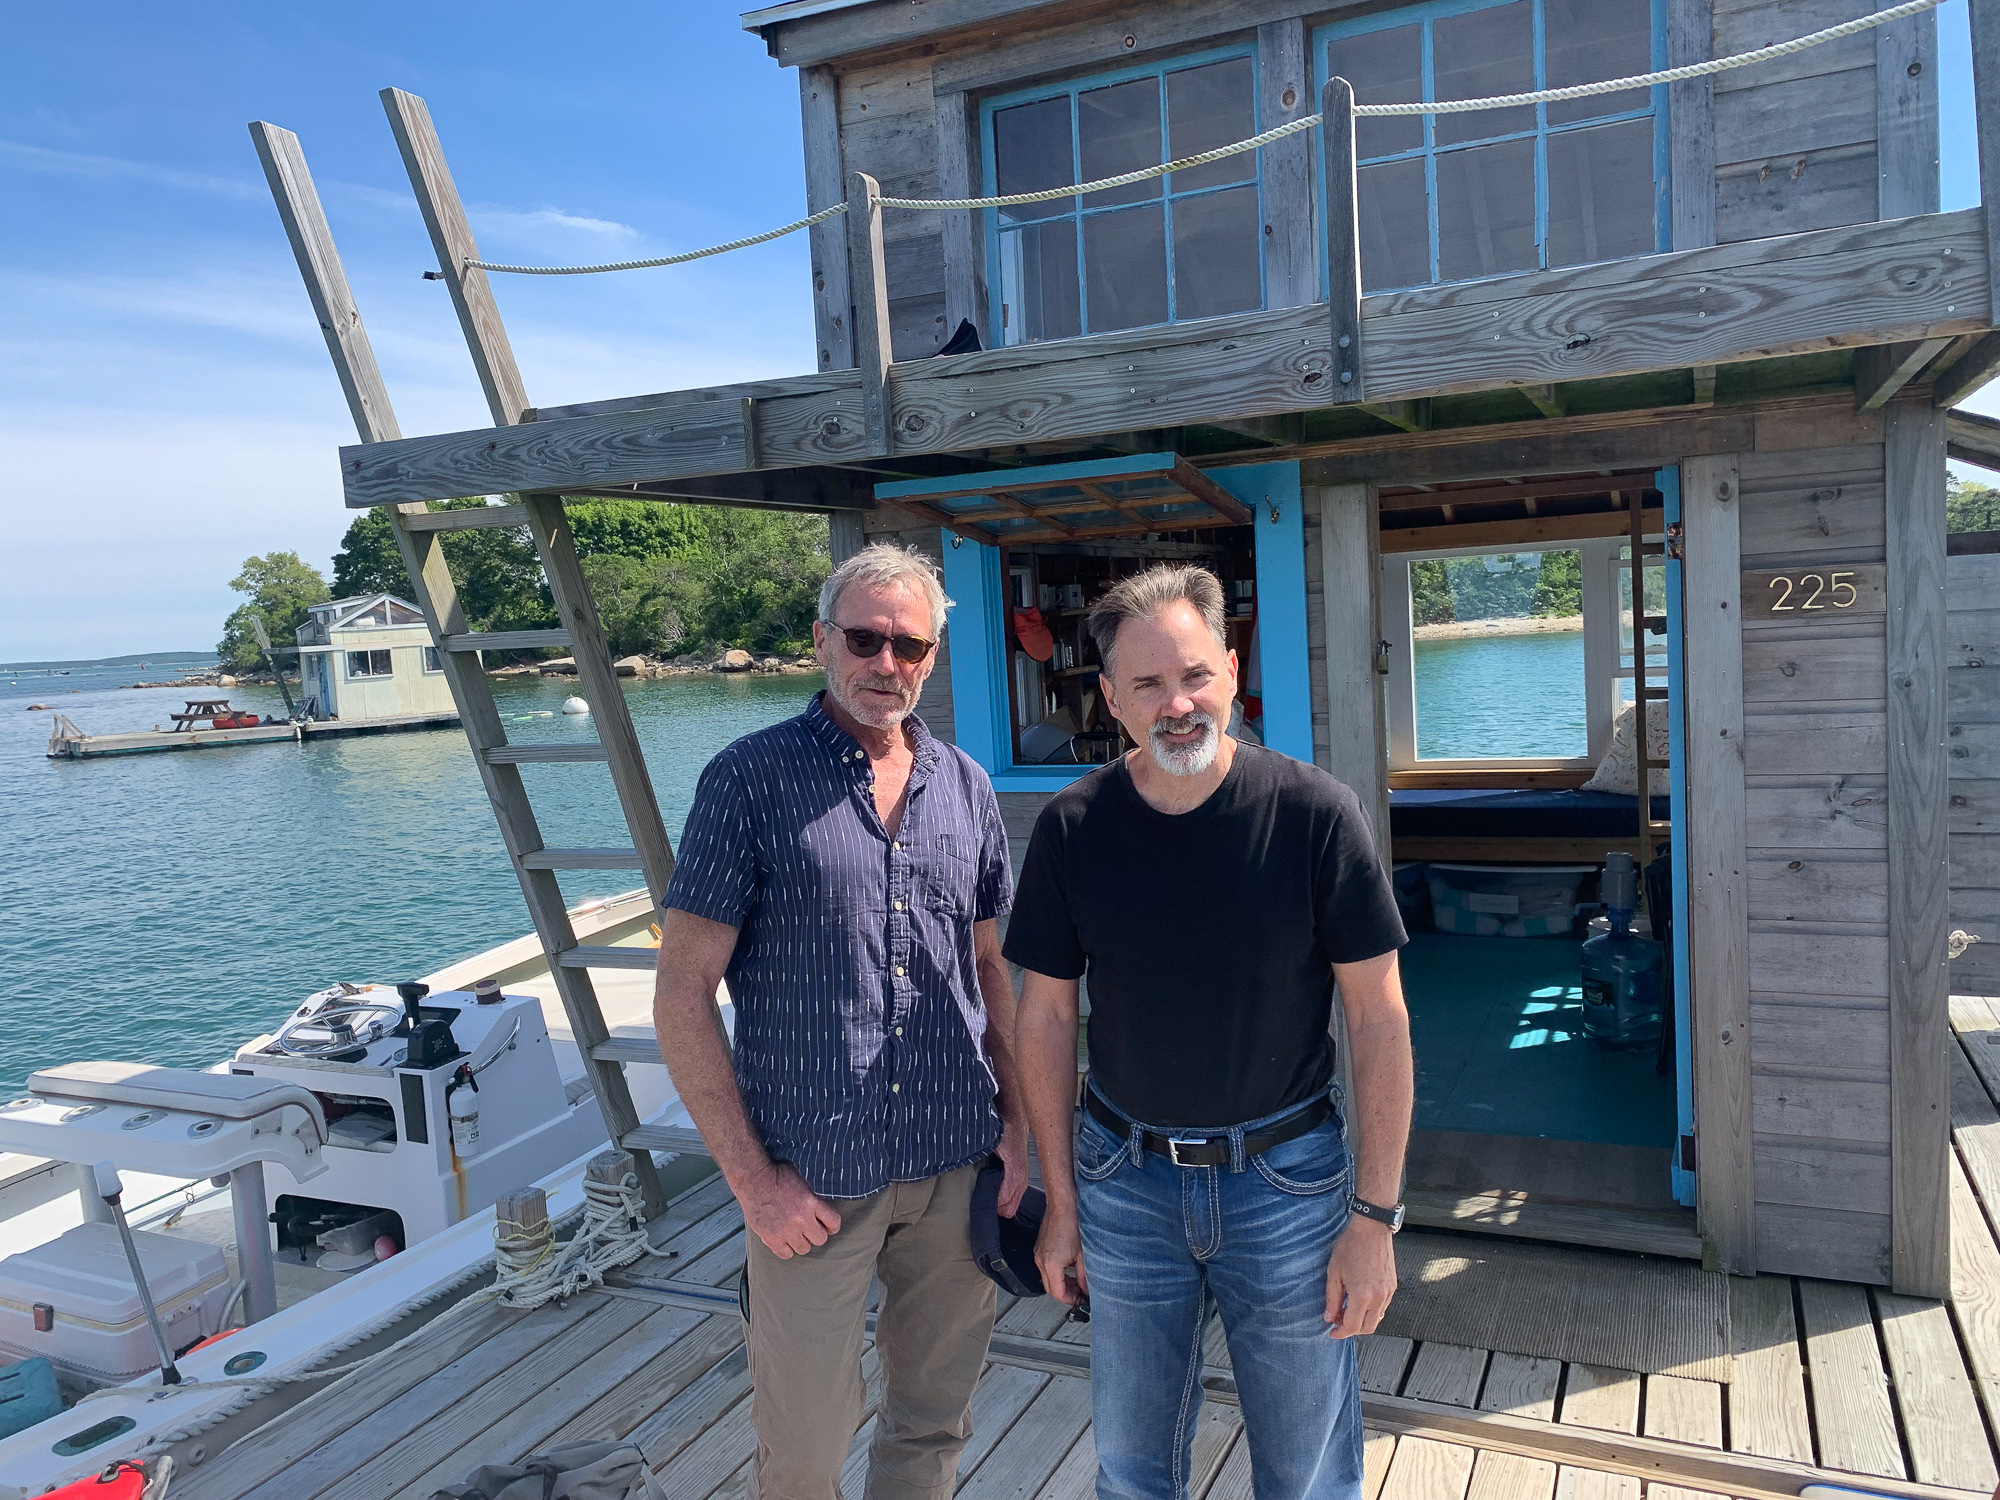 Scott Carrier and William J. Astore on the house raft in Woods Hole Harbor.